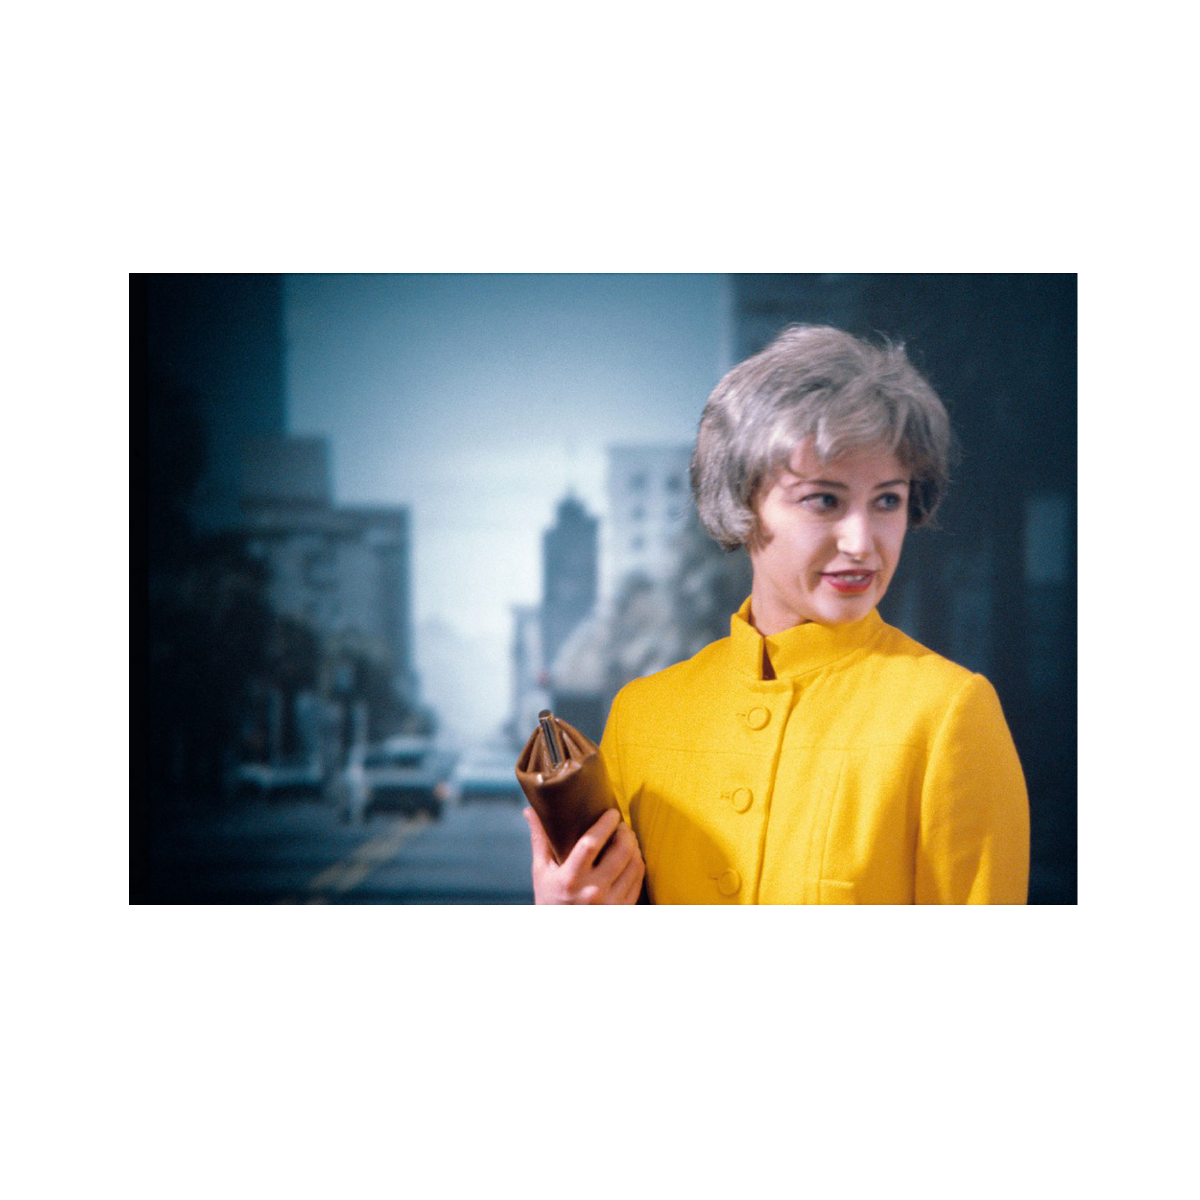 uncover-body-cindysherman-05.png